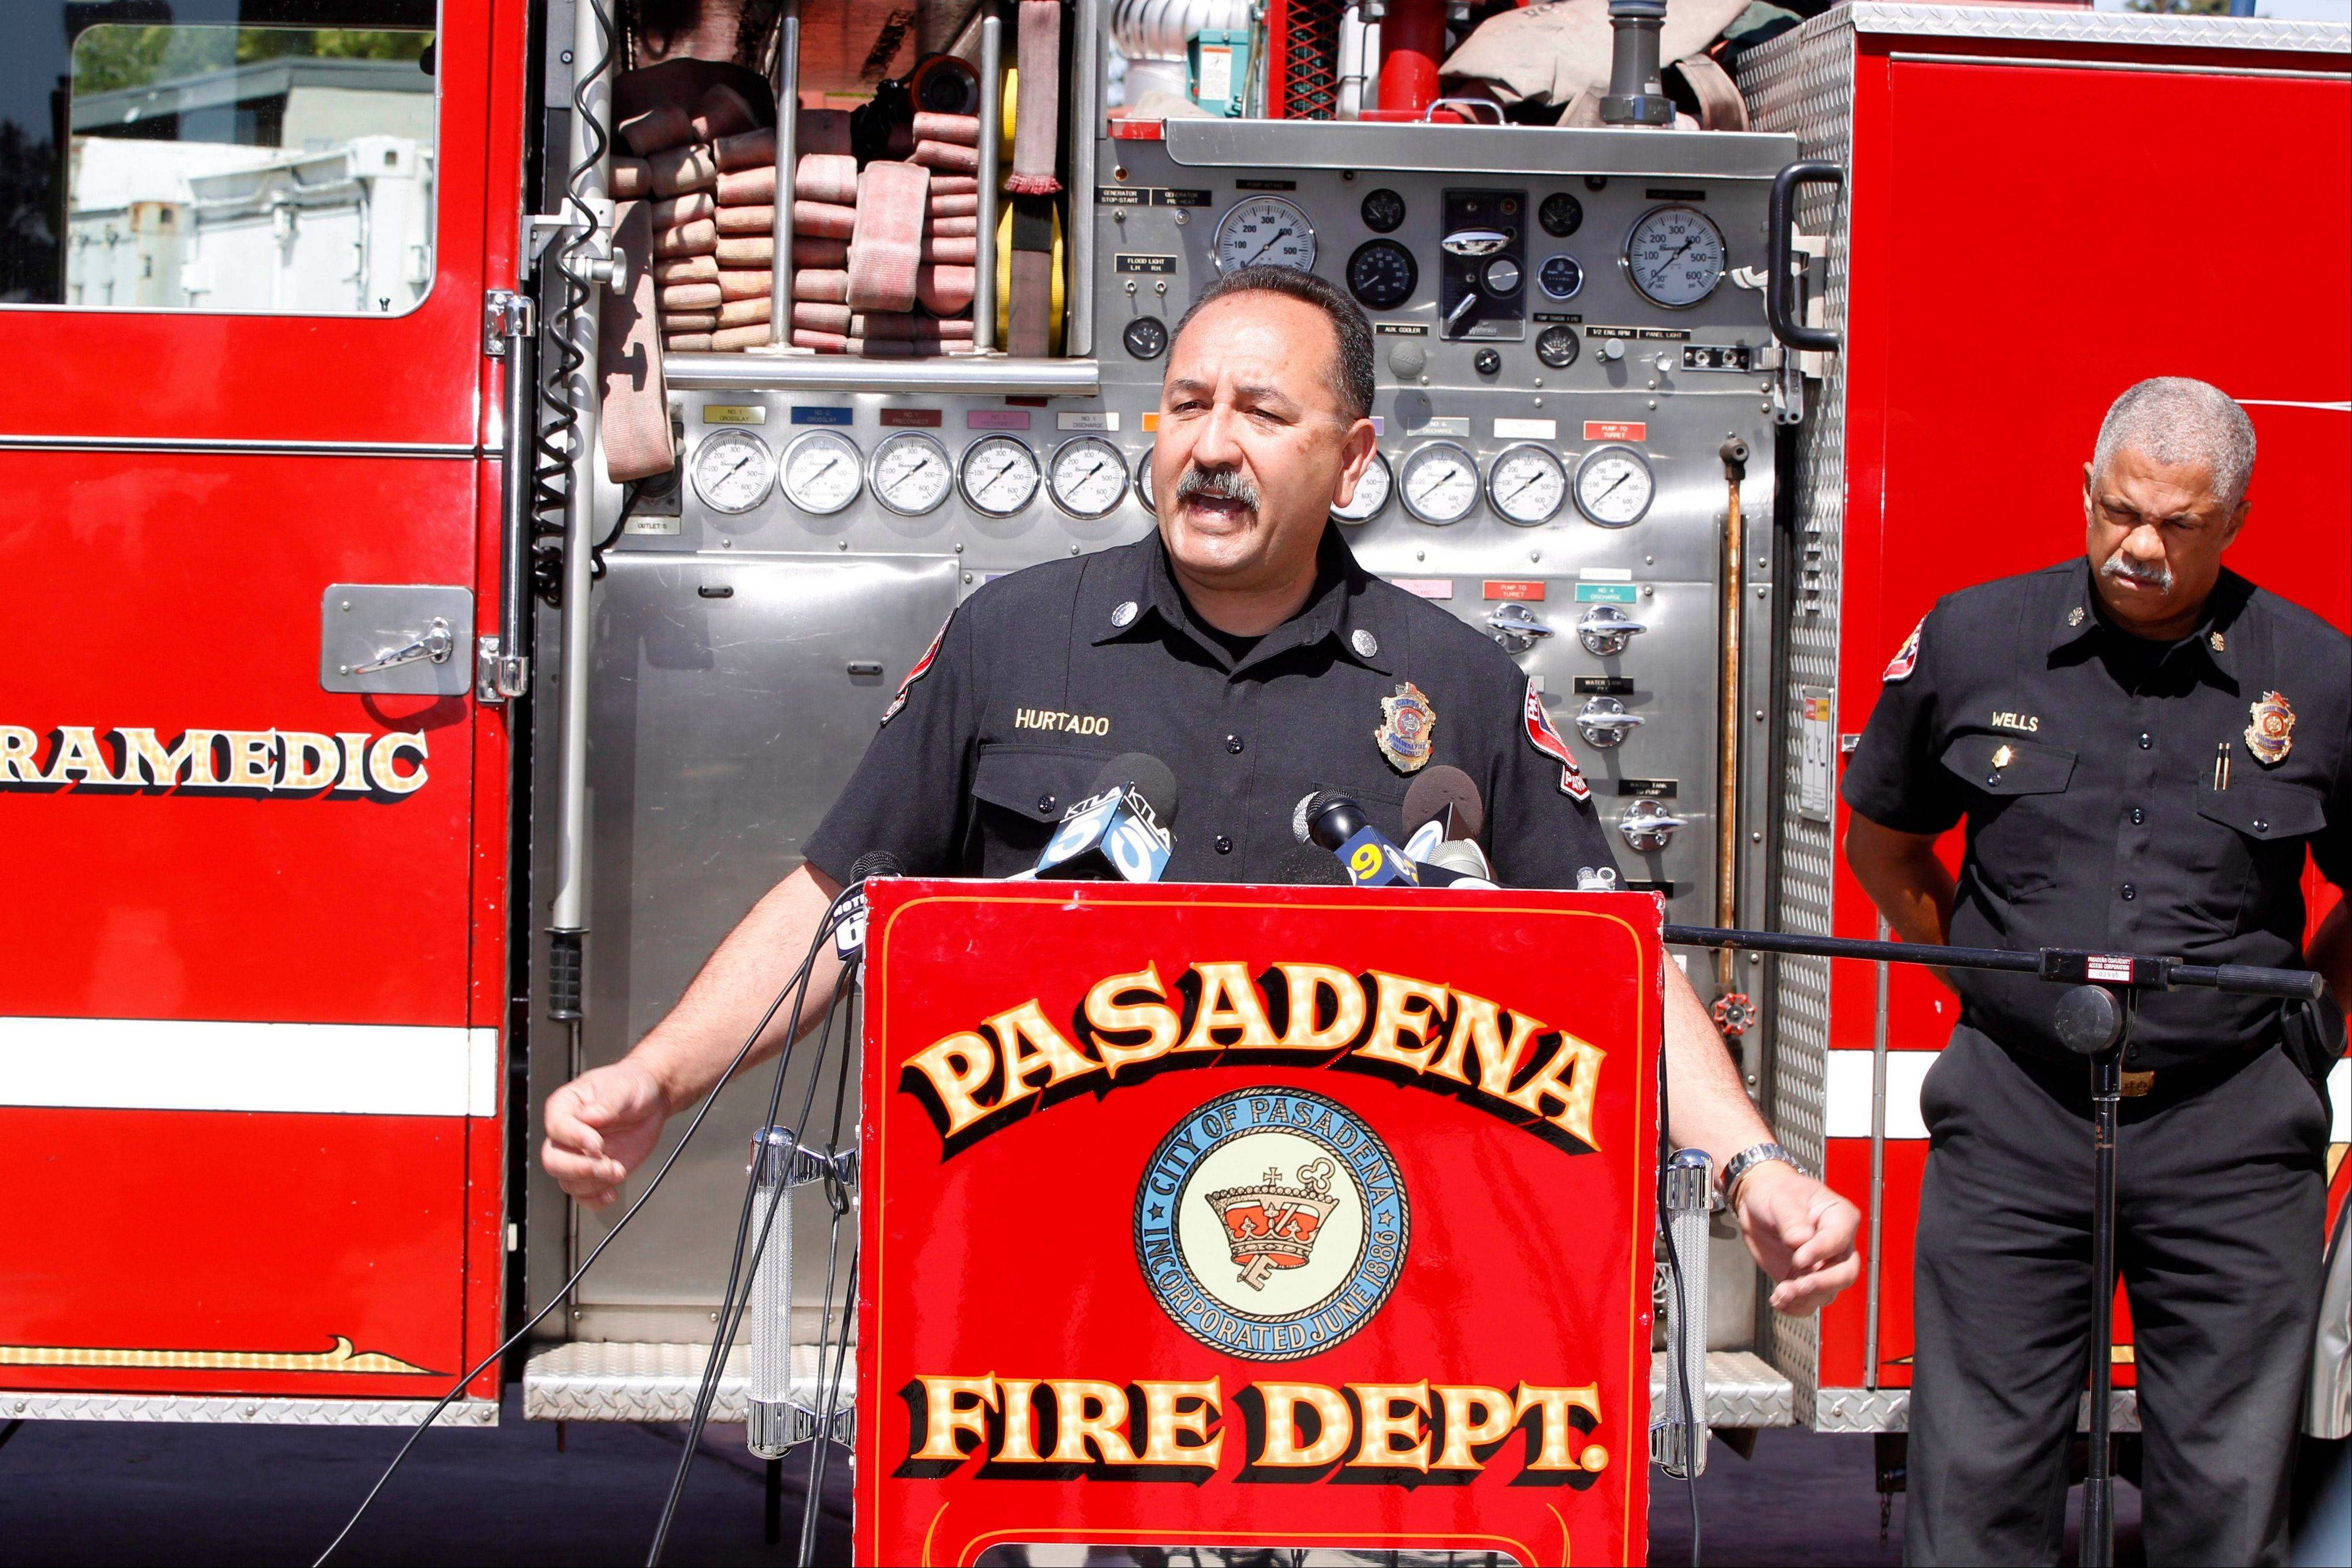 Art Hurtado, Pasadena Fire captain and paramedic, helped save the life of a man at Home Depot after the victim apparently tried to cut his arms off using handsaws. With help from police and store employees, Hurtado who was off-duty collected rope and rags from store shelves and put makeshift tourniquets on both arms, most likely saving the man�s life, police said.